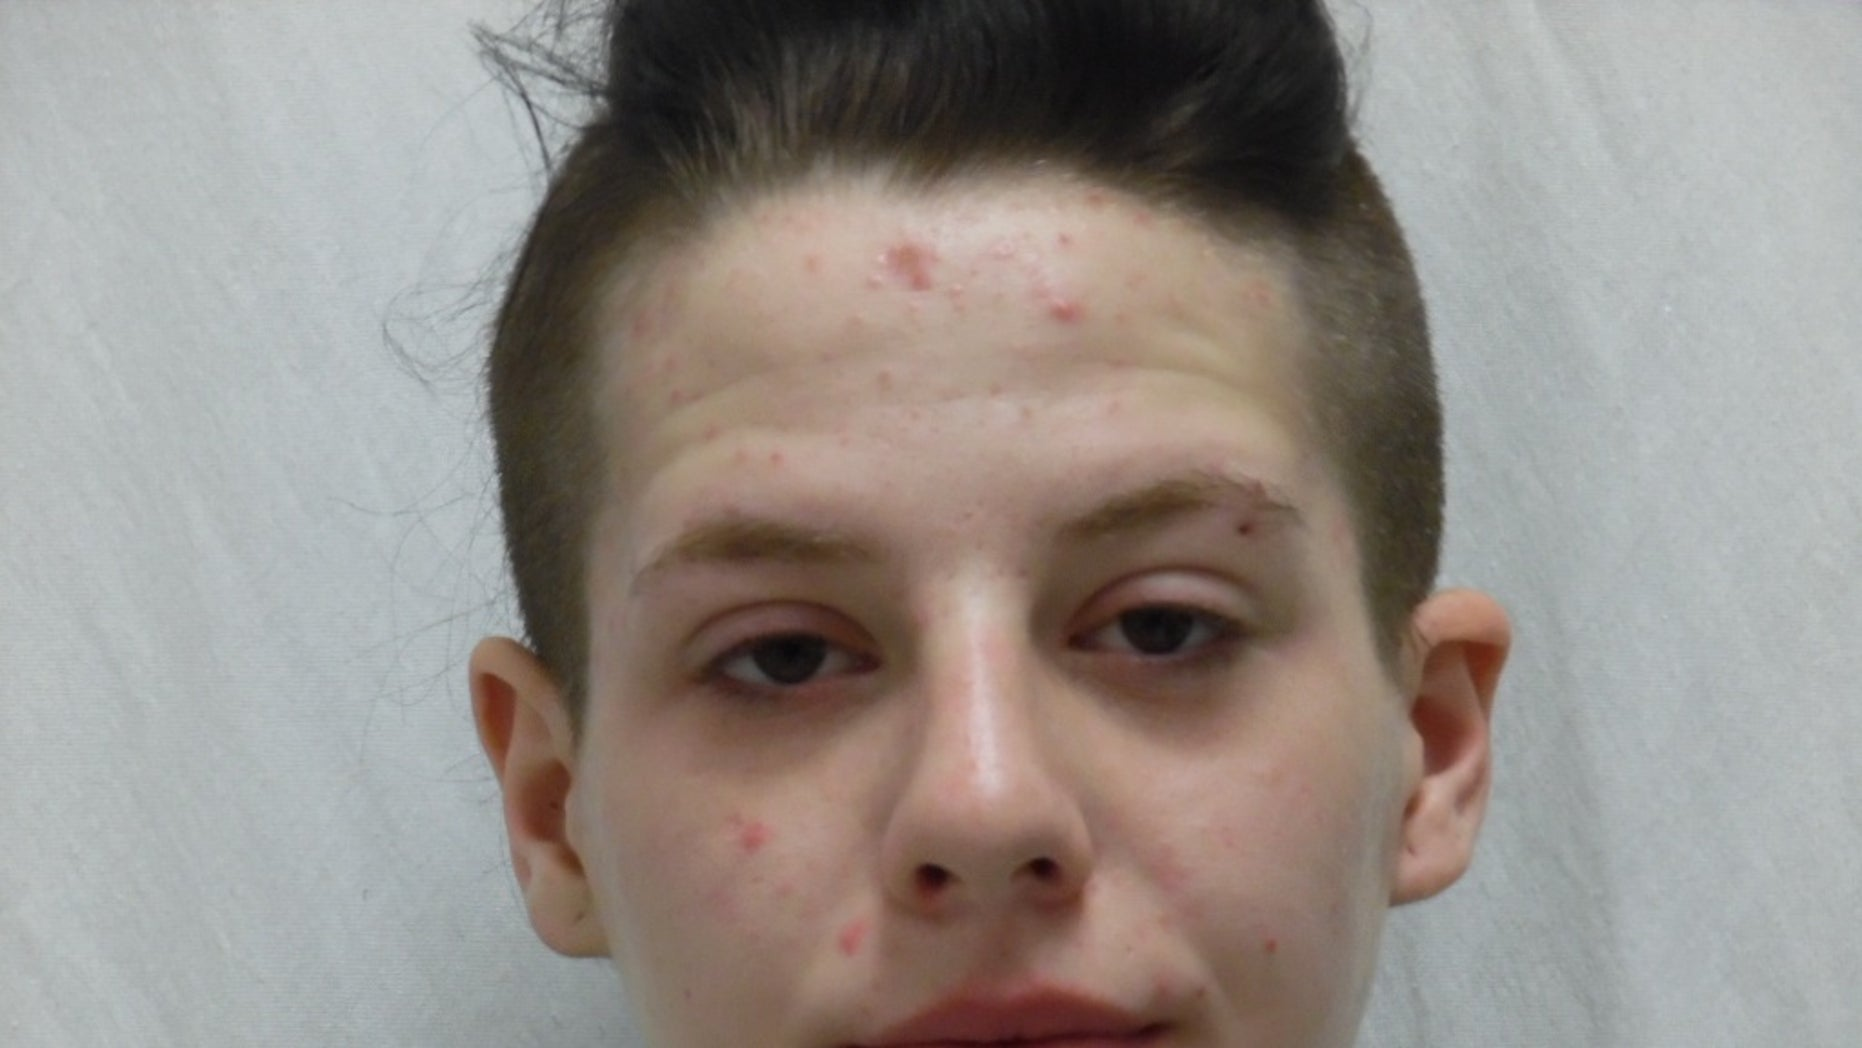 Sky Lynn Larsen, 19, was arrested Friday for reportedly stealing custom-made leg braces from a disabled girl.